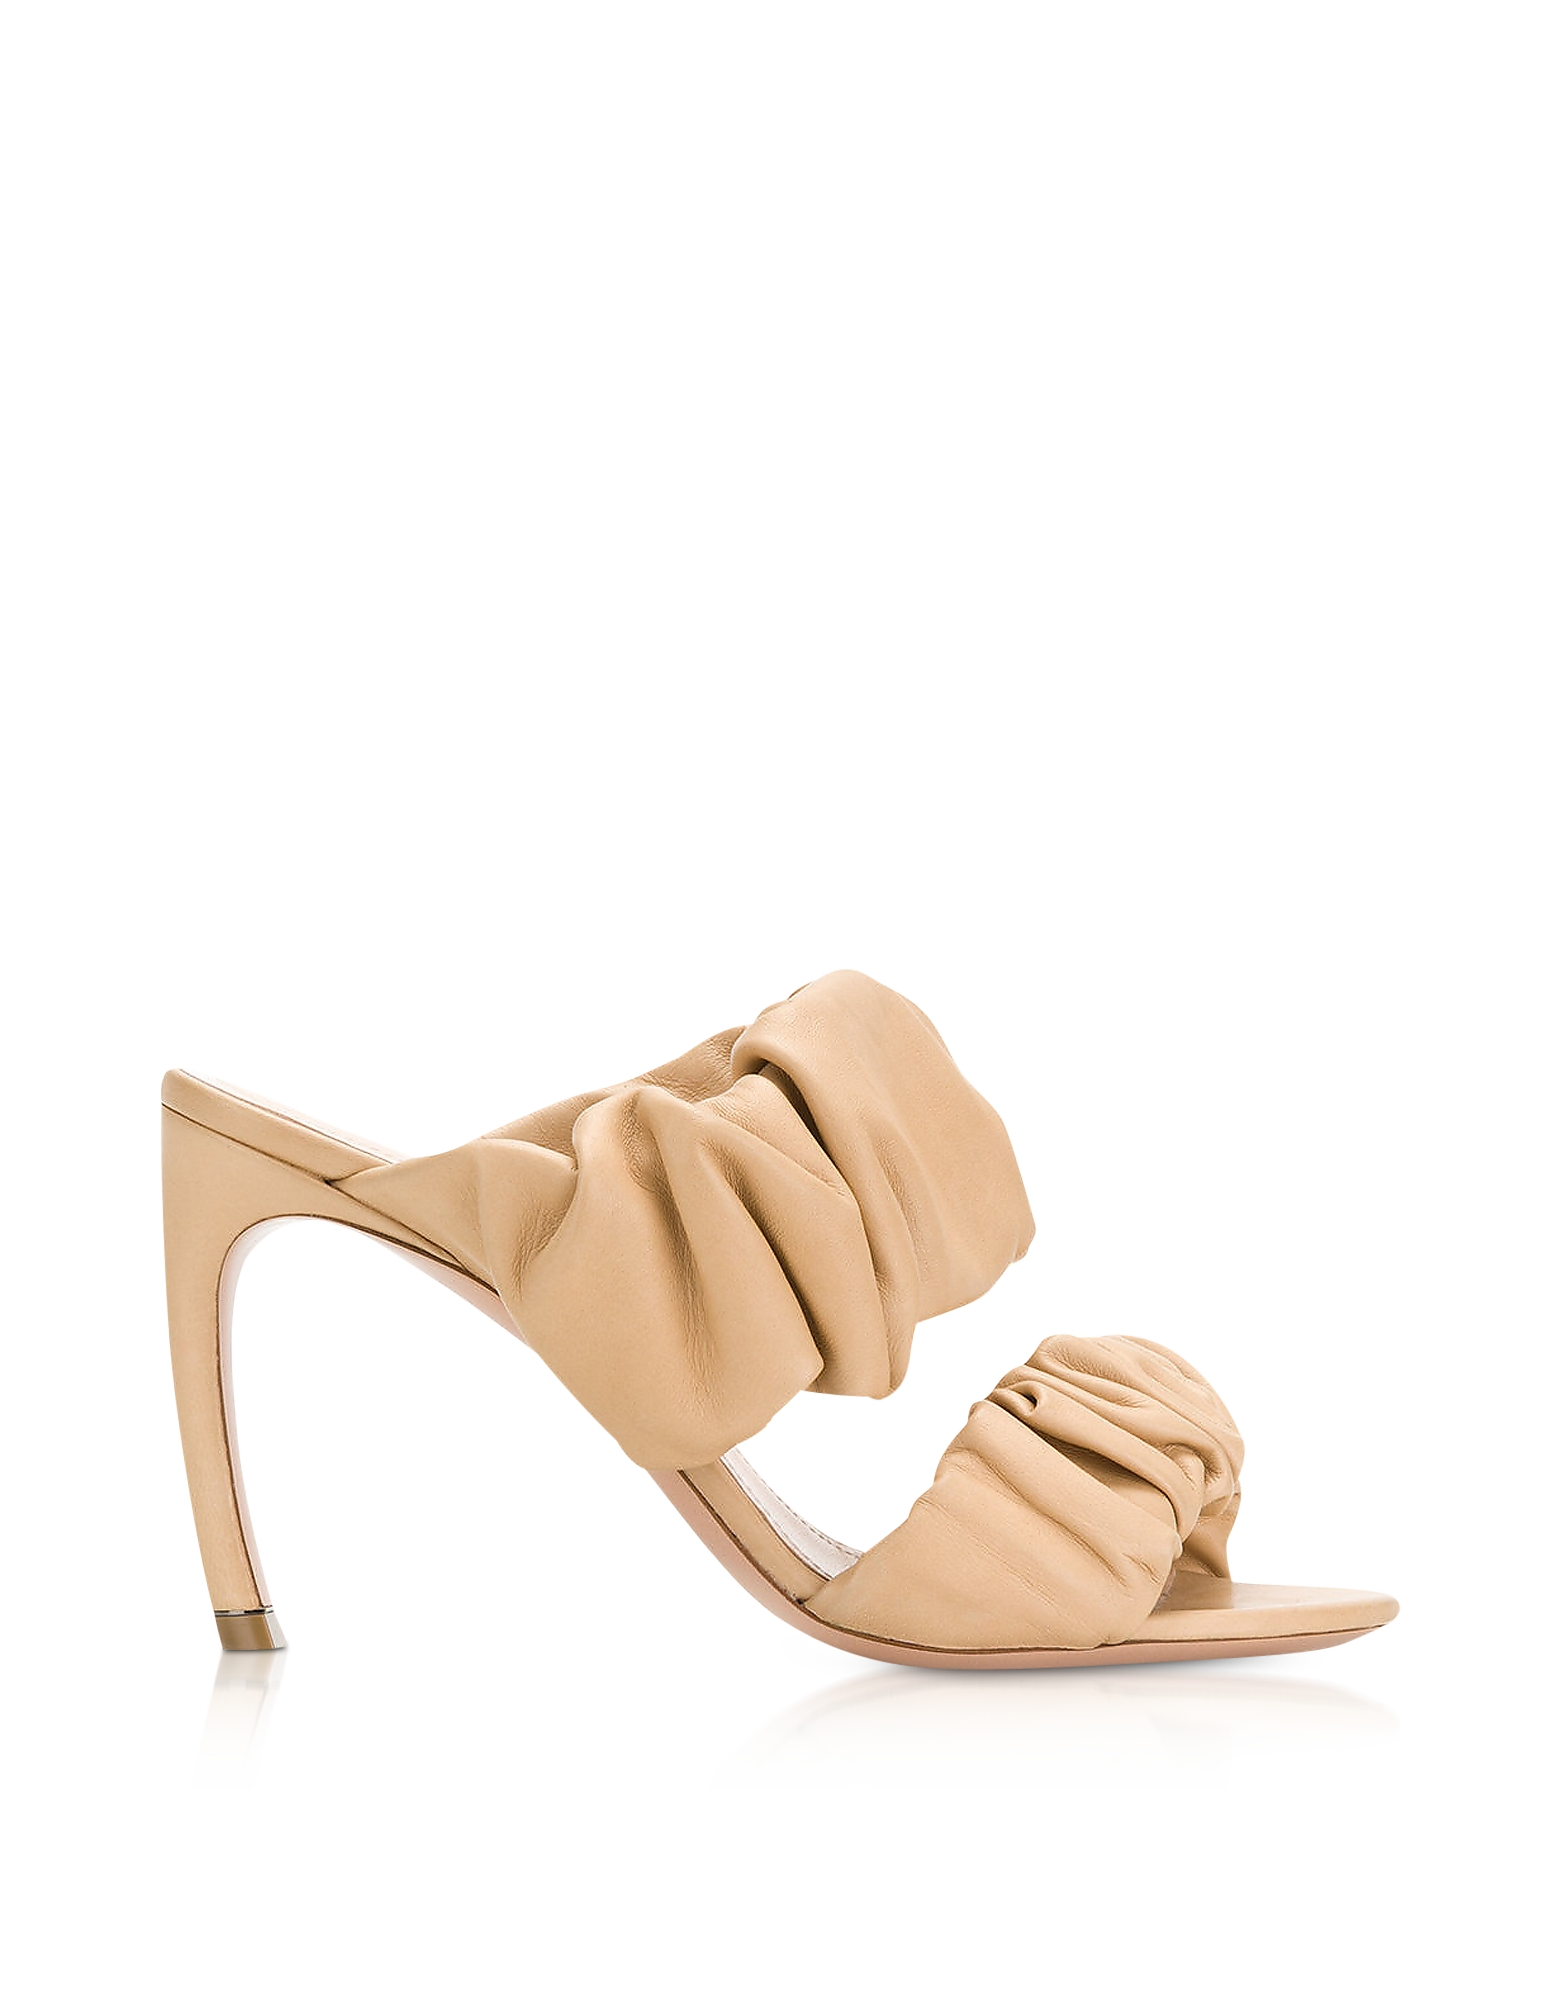 Nicholas Kirkwood Shoes, 90mm Tan Nappa Courtney Mules